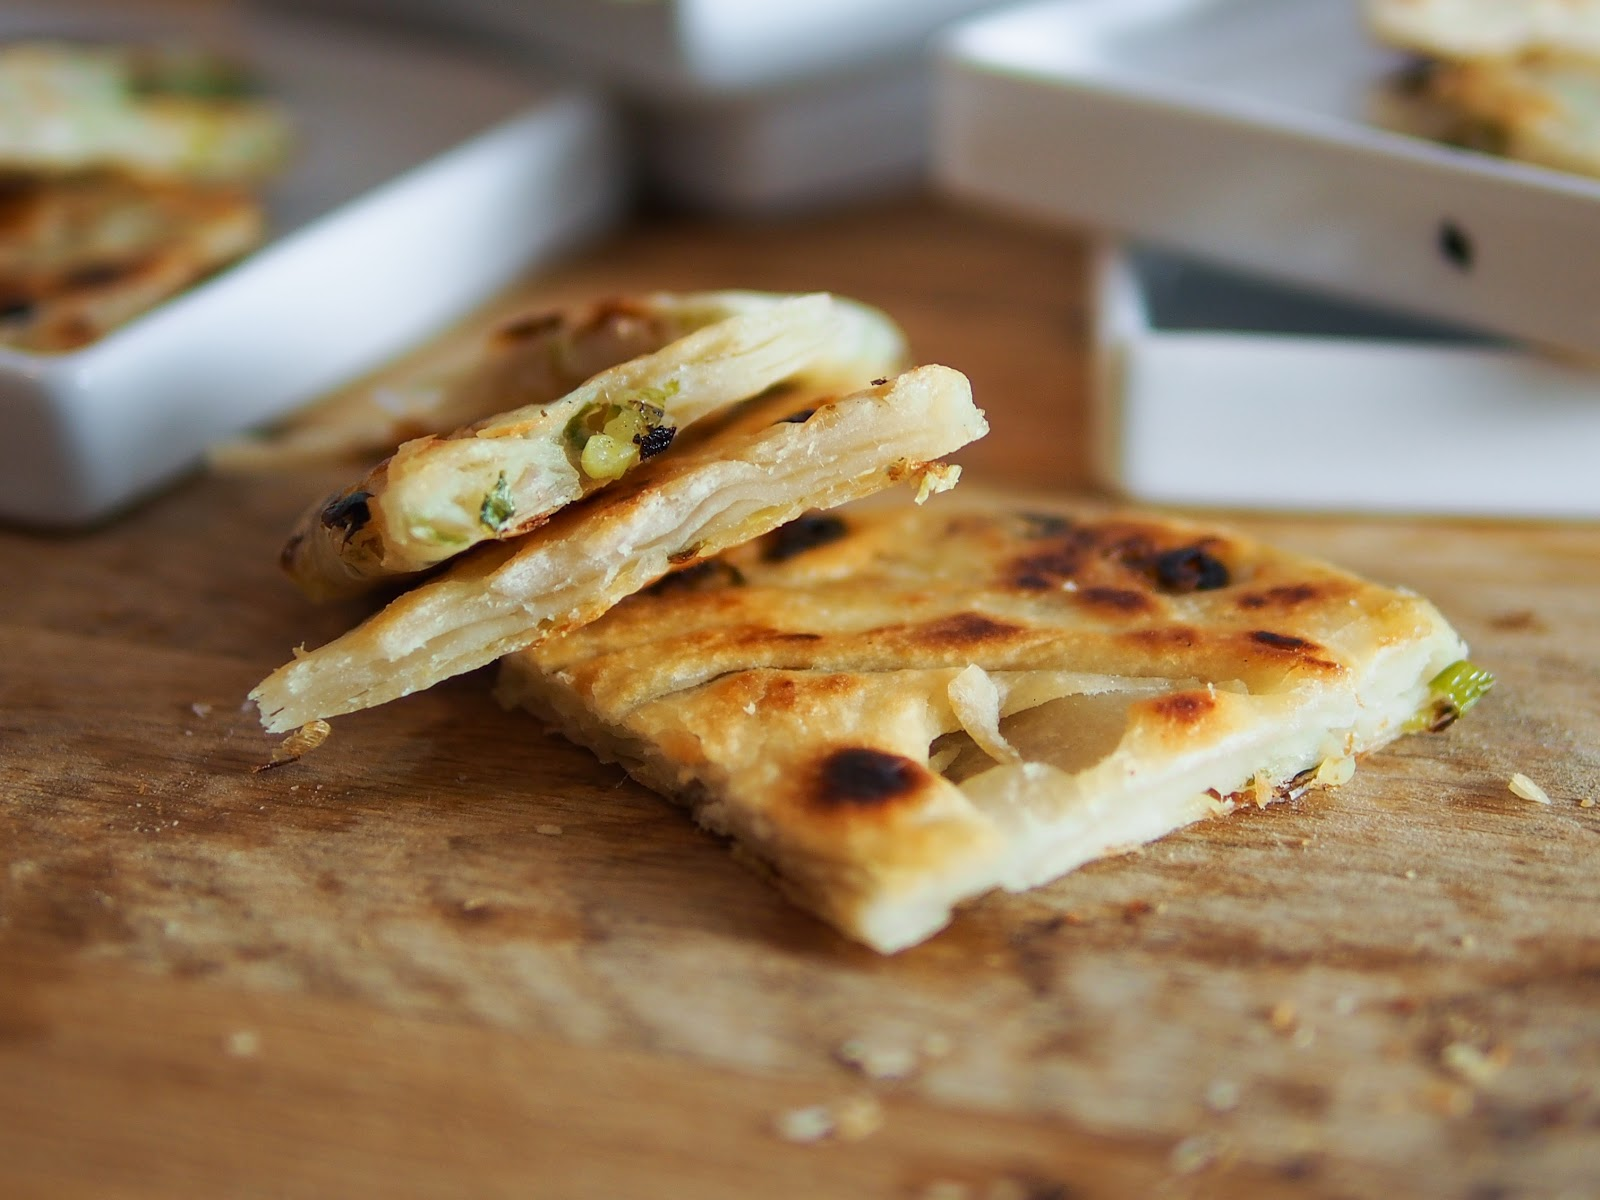 Foodmanna: Chinese scallion pancakes